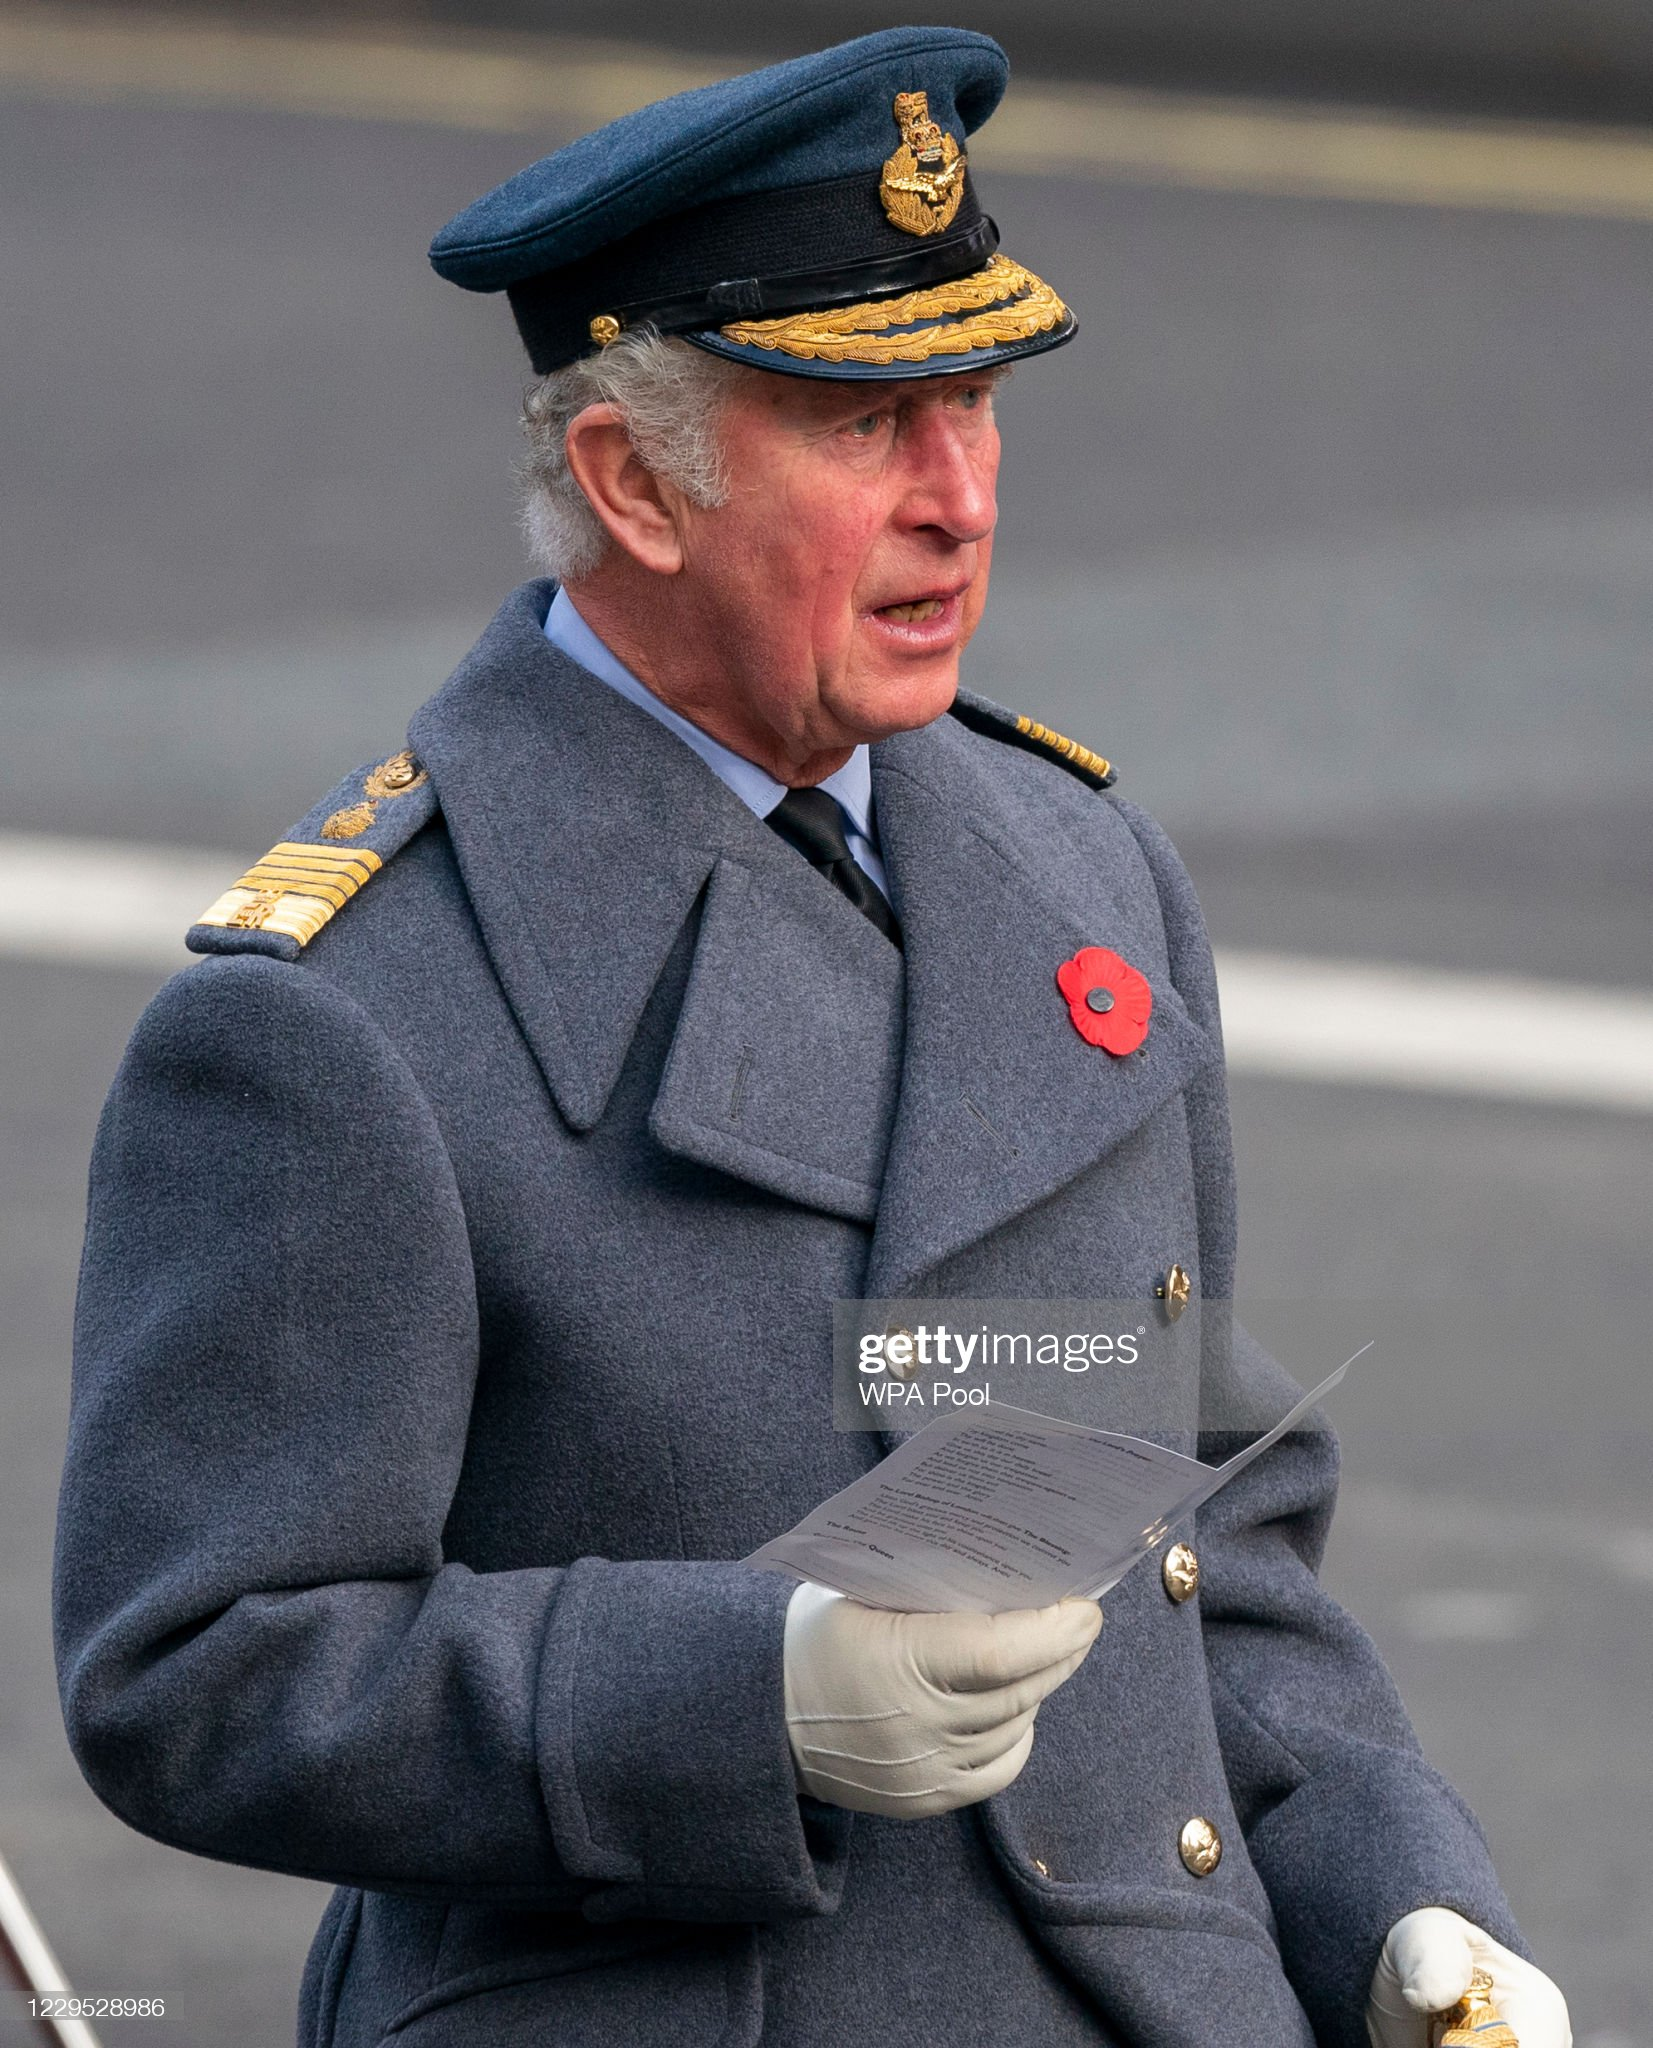 https://media.gettyimages.com/photos/britains-prince-charles-prince-of-wales-attends-the-national-service-picture-id1229528986?s=2048x2048